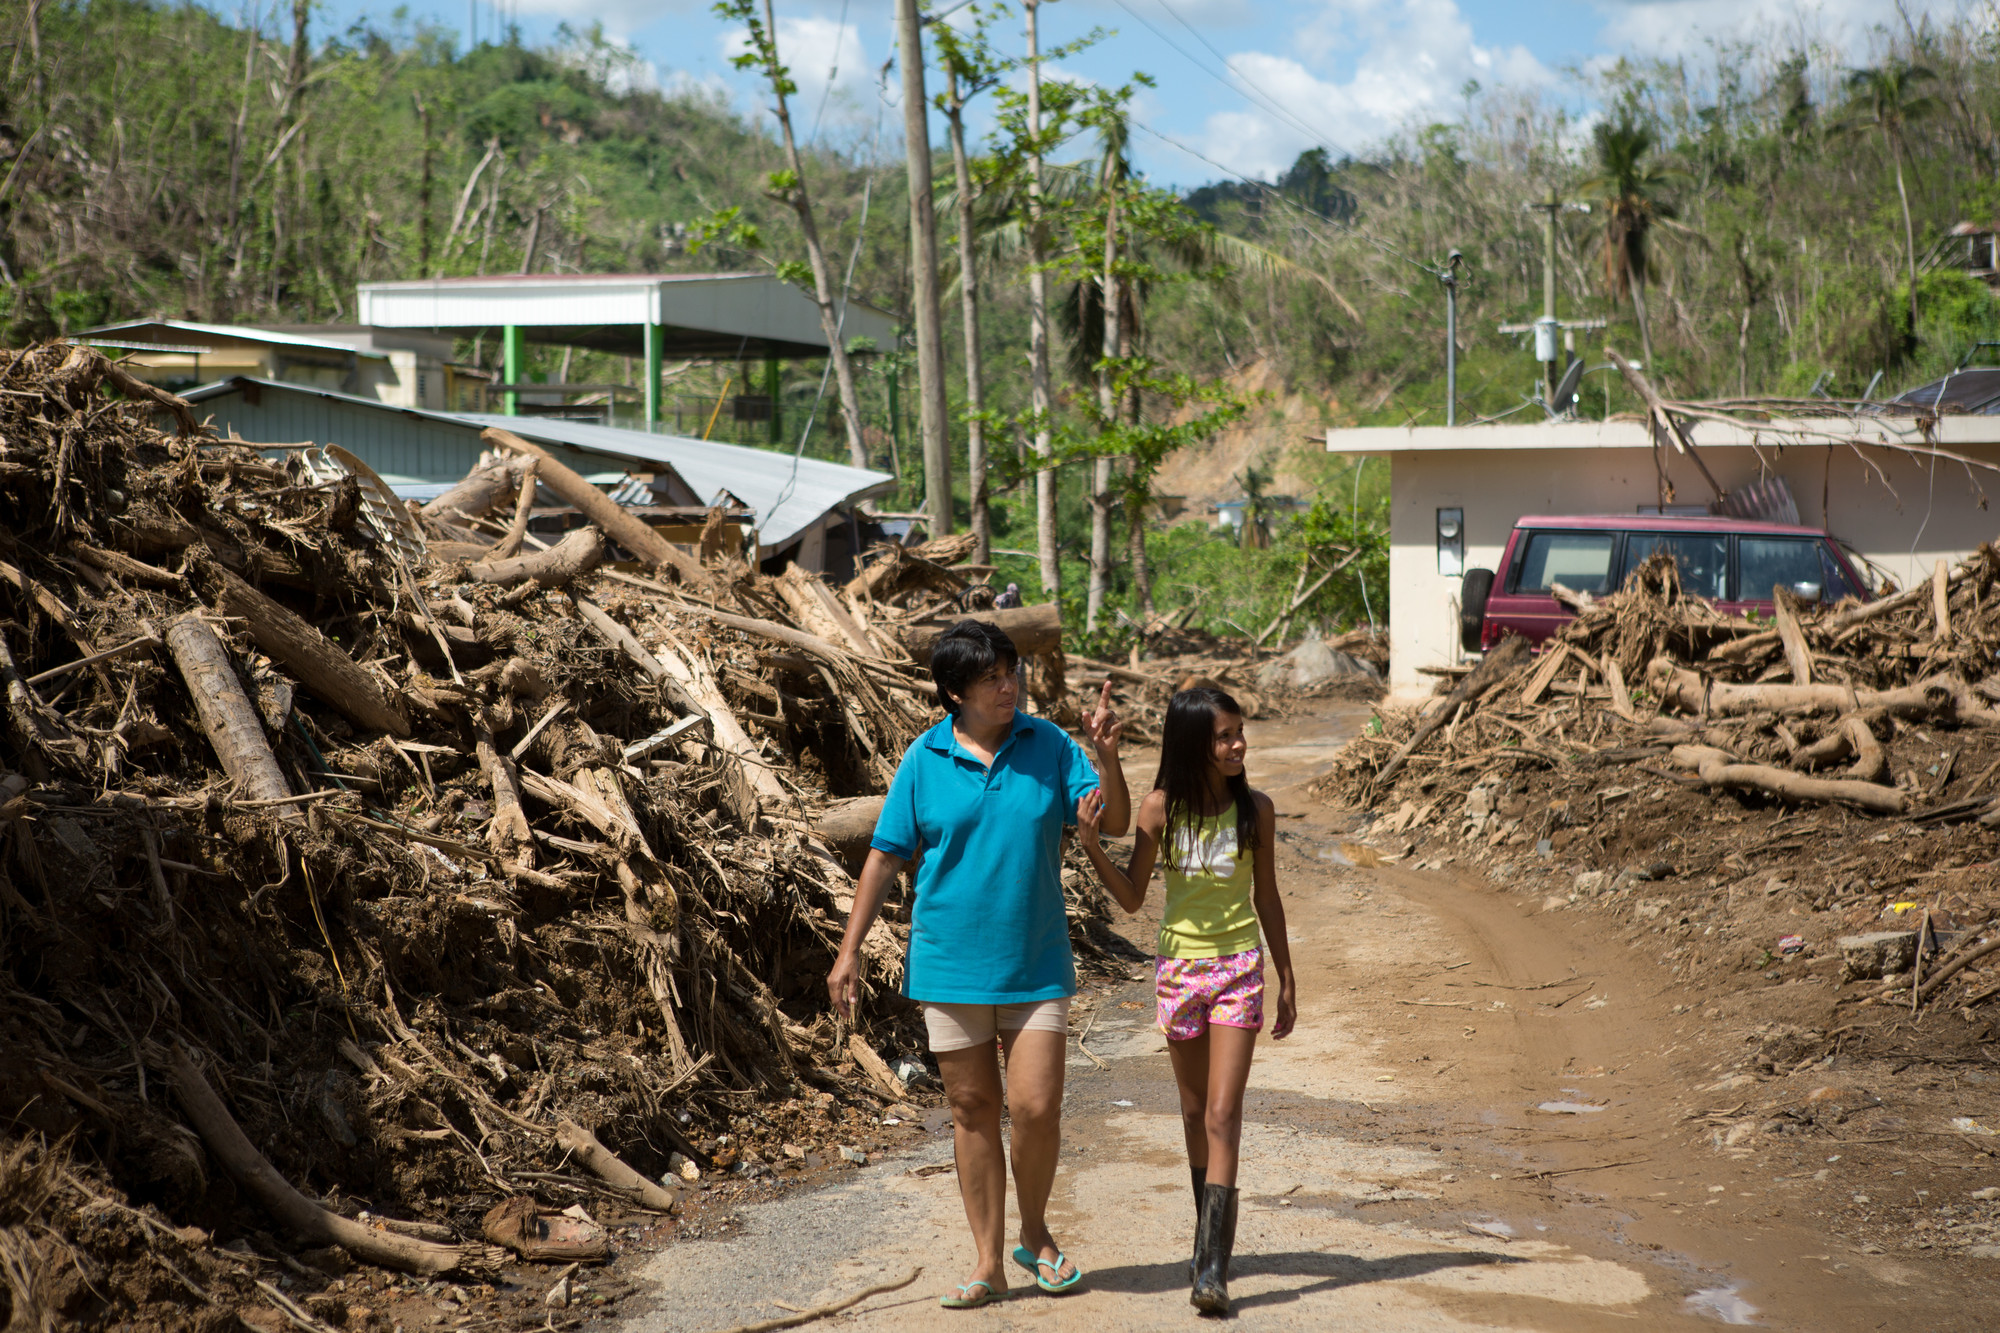 Igdalia Heredia Gonzalez, 49, and her daughter Valeria Gonzalez Jimenez, 11, walk through a cleared path in debris that all but buried their home during Hurricane Maria six weeks ago, in the town of Puente Blanco, in the municipality of Adjuntas, Puerto Rico, November 1, 2017.